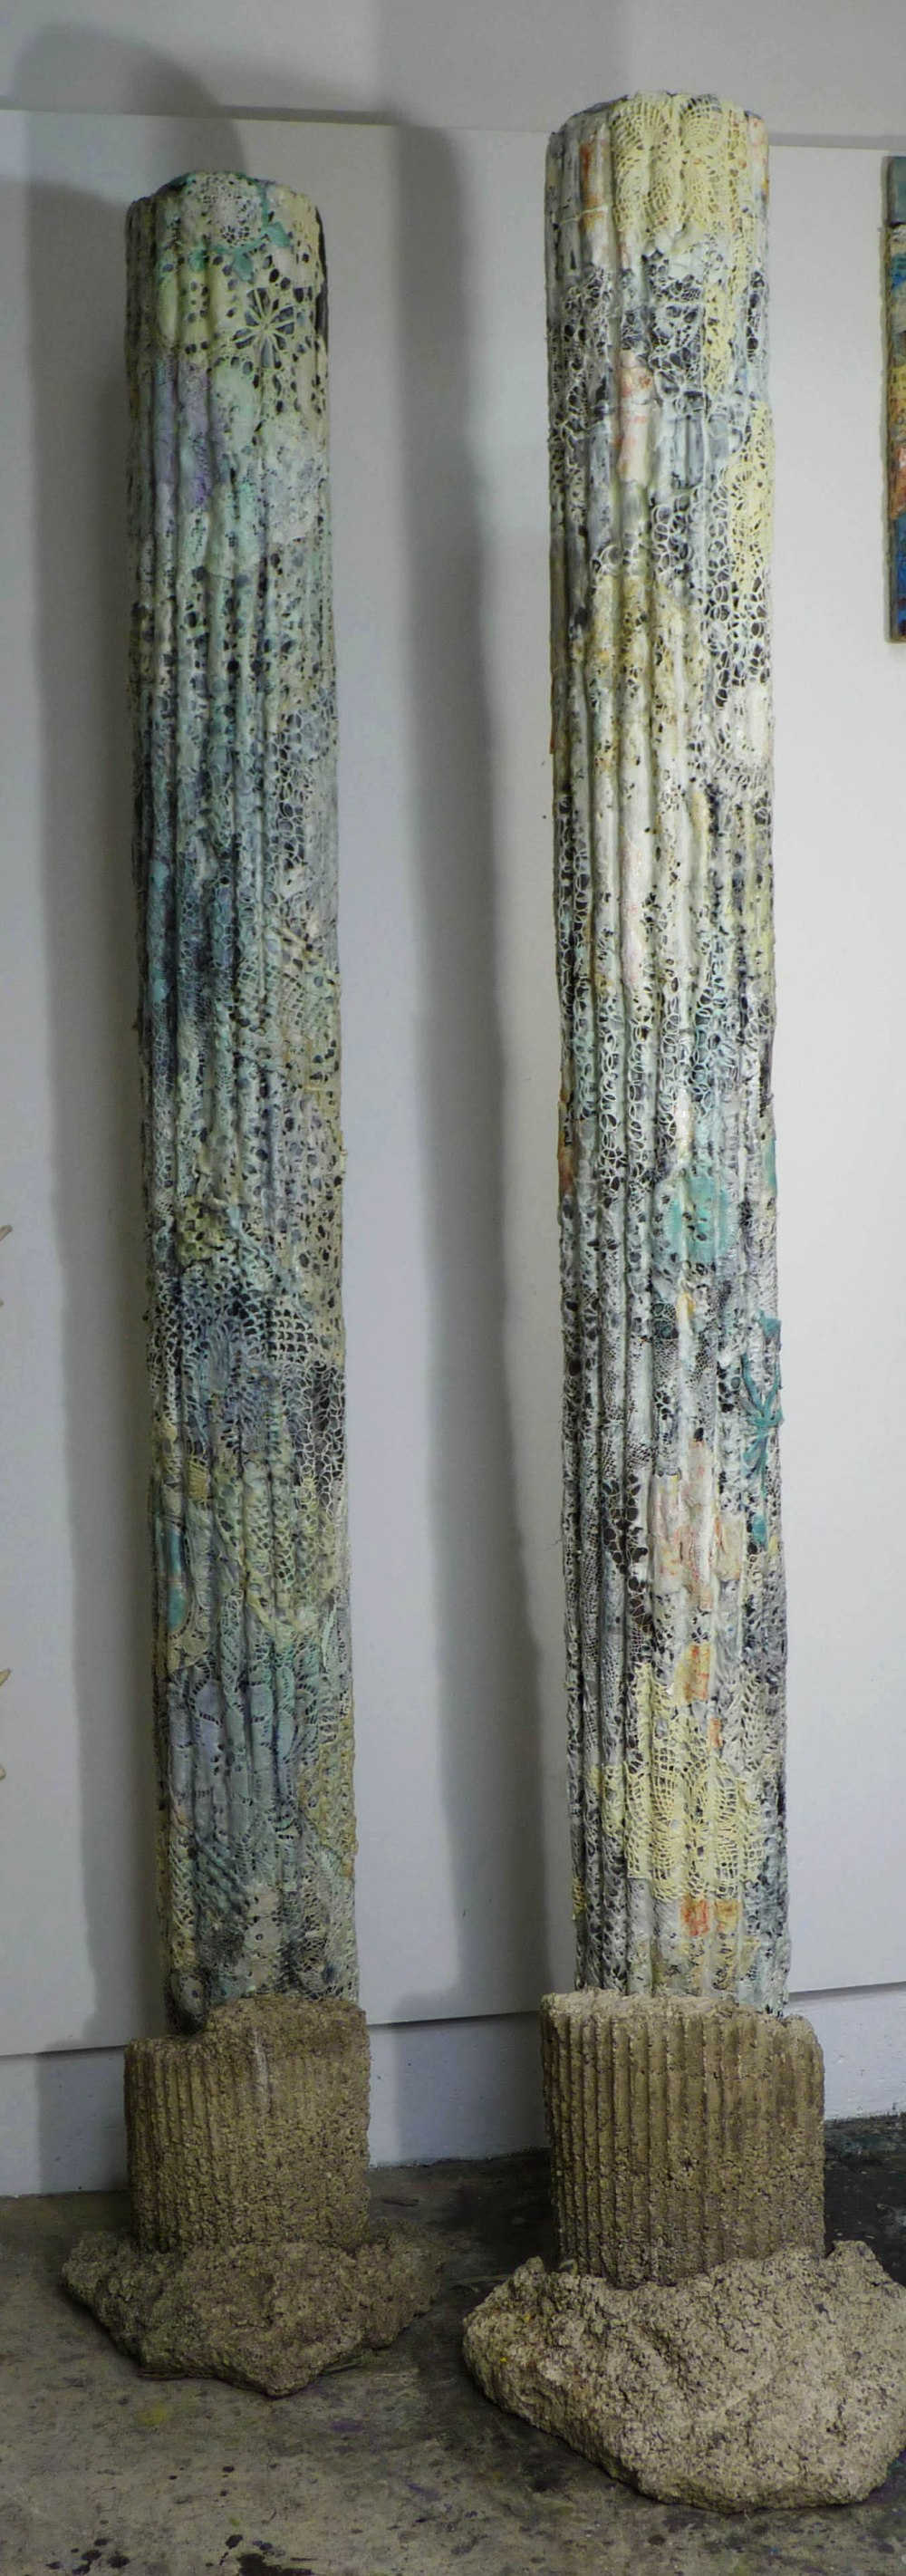 "Creature Columns: 8' x 18"", cast paper over sono tube, cast concrete base, lace, wax, oil."